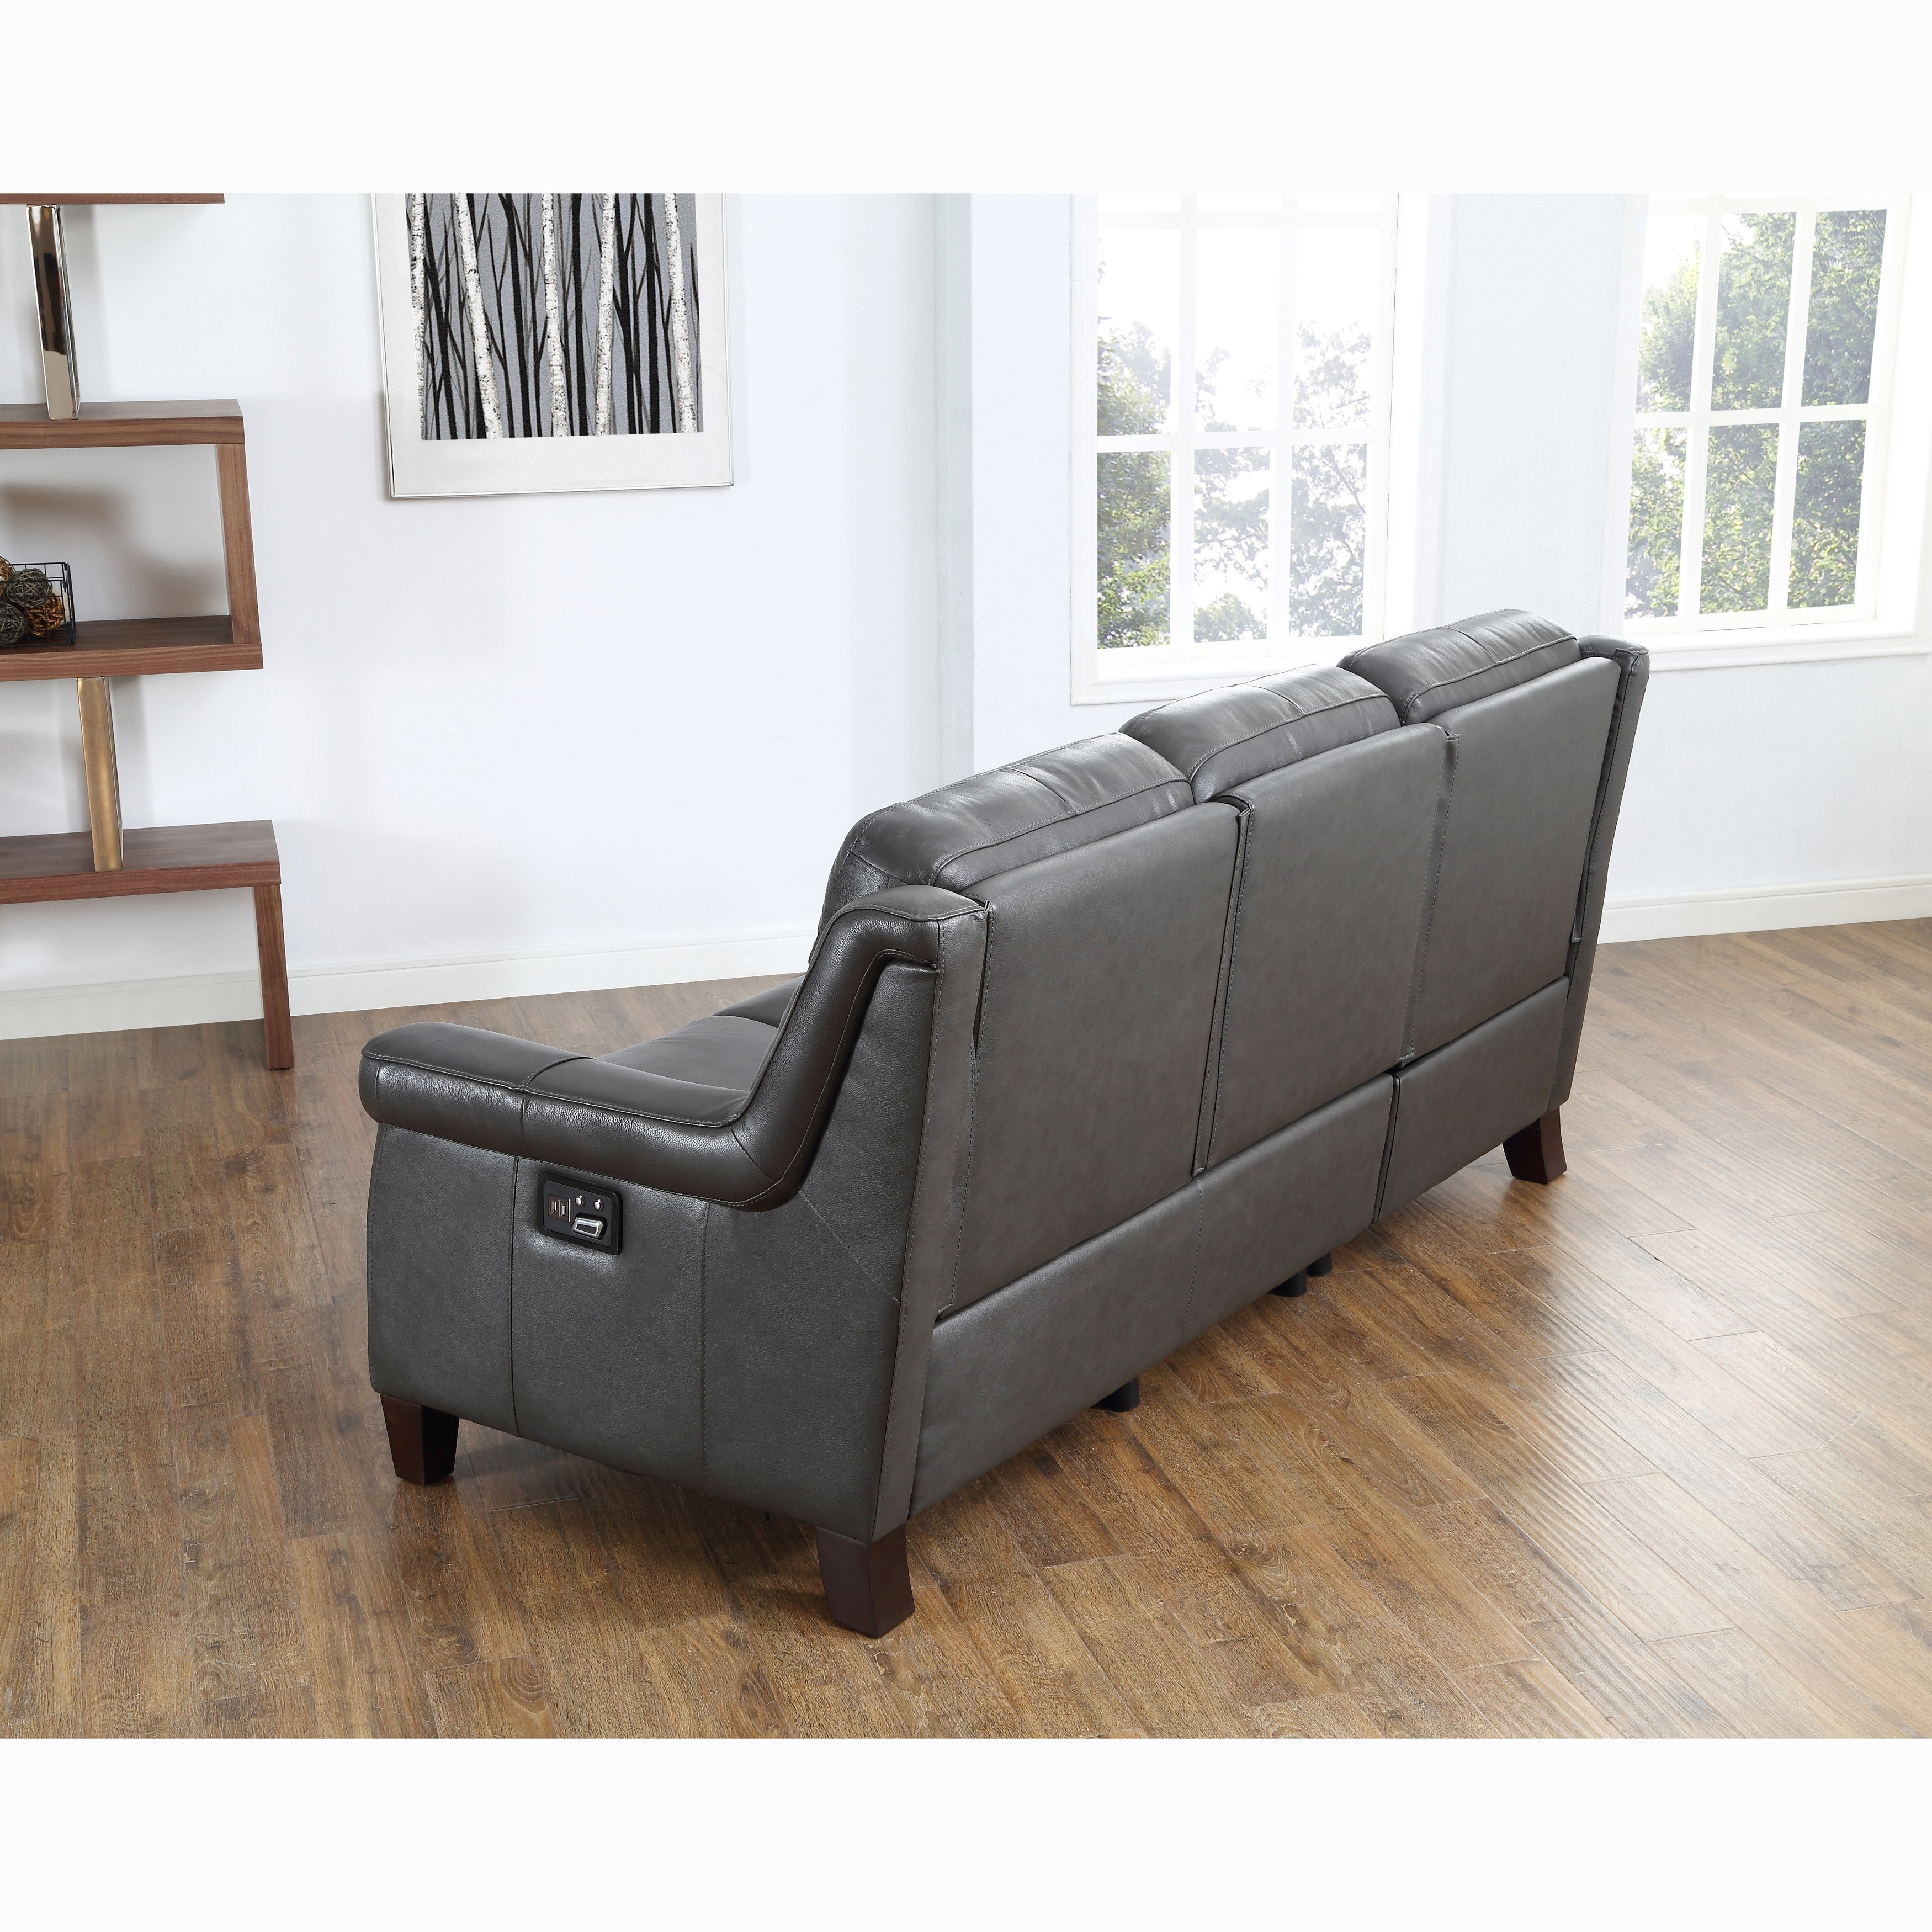 Grey Leather Power Reclining Sofa – Review Home Decor Throughout Clyde Grey Leather 3 Piece Power Reclining Sectionals With Pwr Hdrst & Usb (Image 8 of 25)